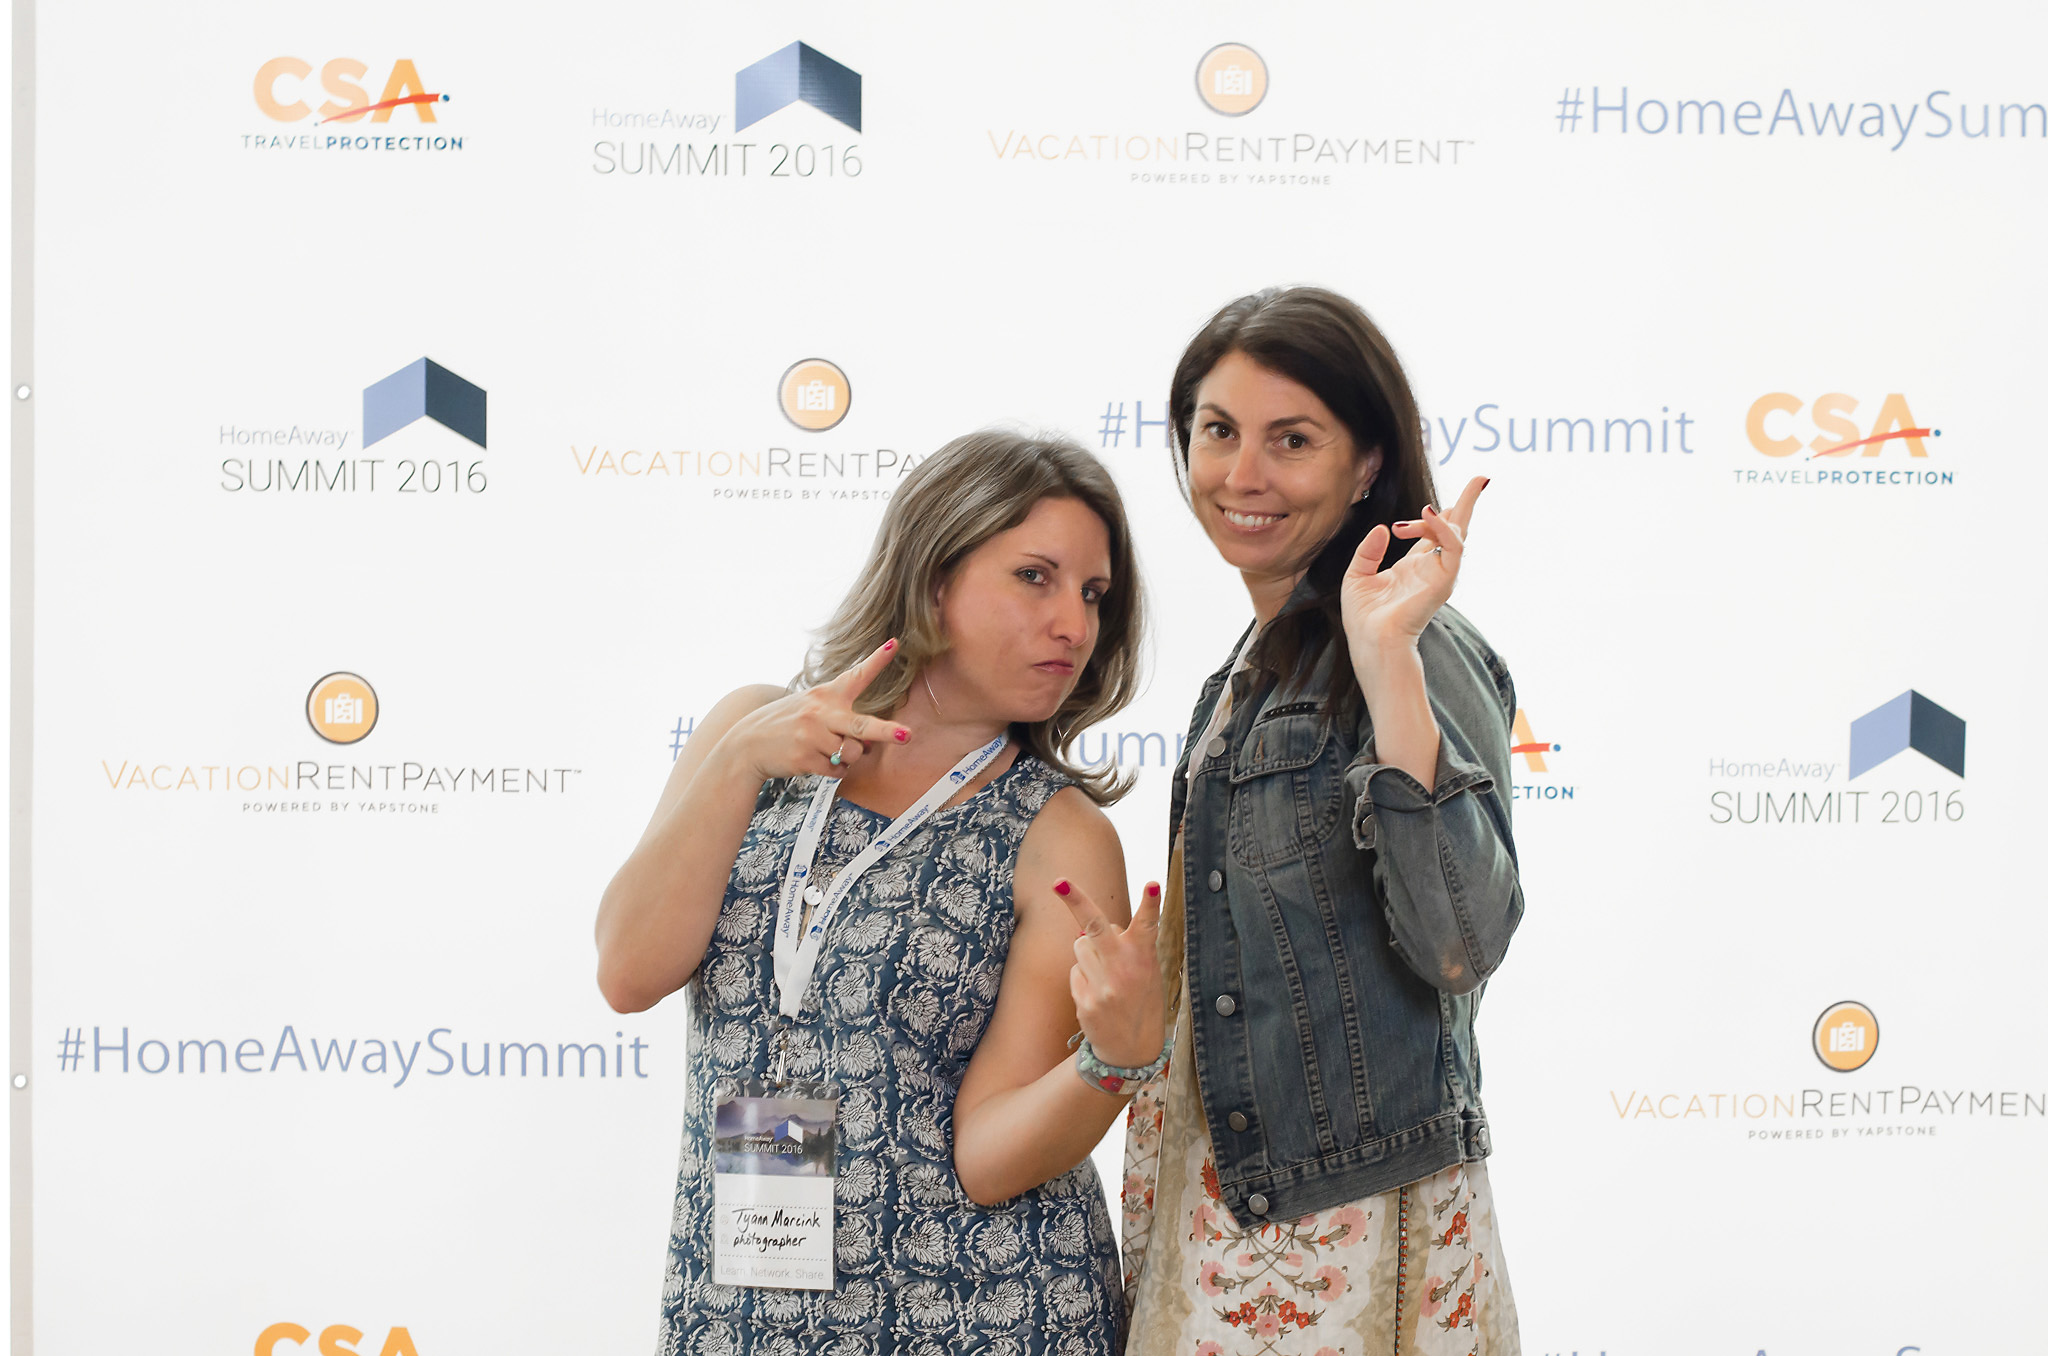 With Alanna Schroeder of The Distinguished Guest at the HomeAway Summit - Austin 2016